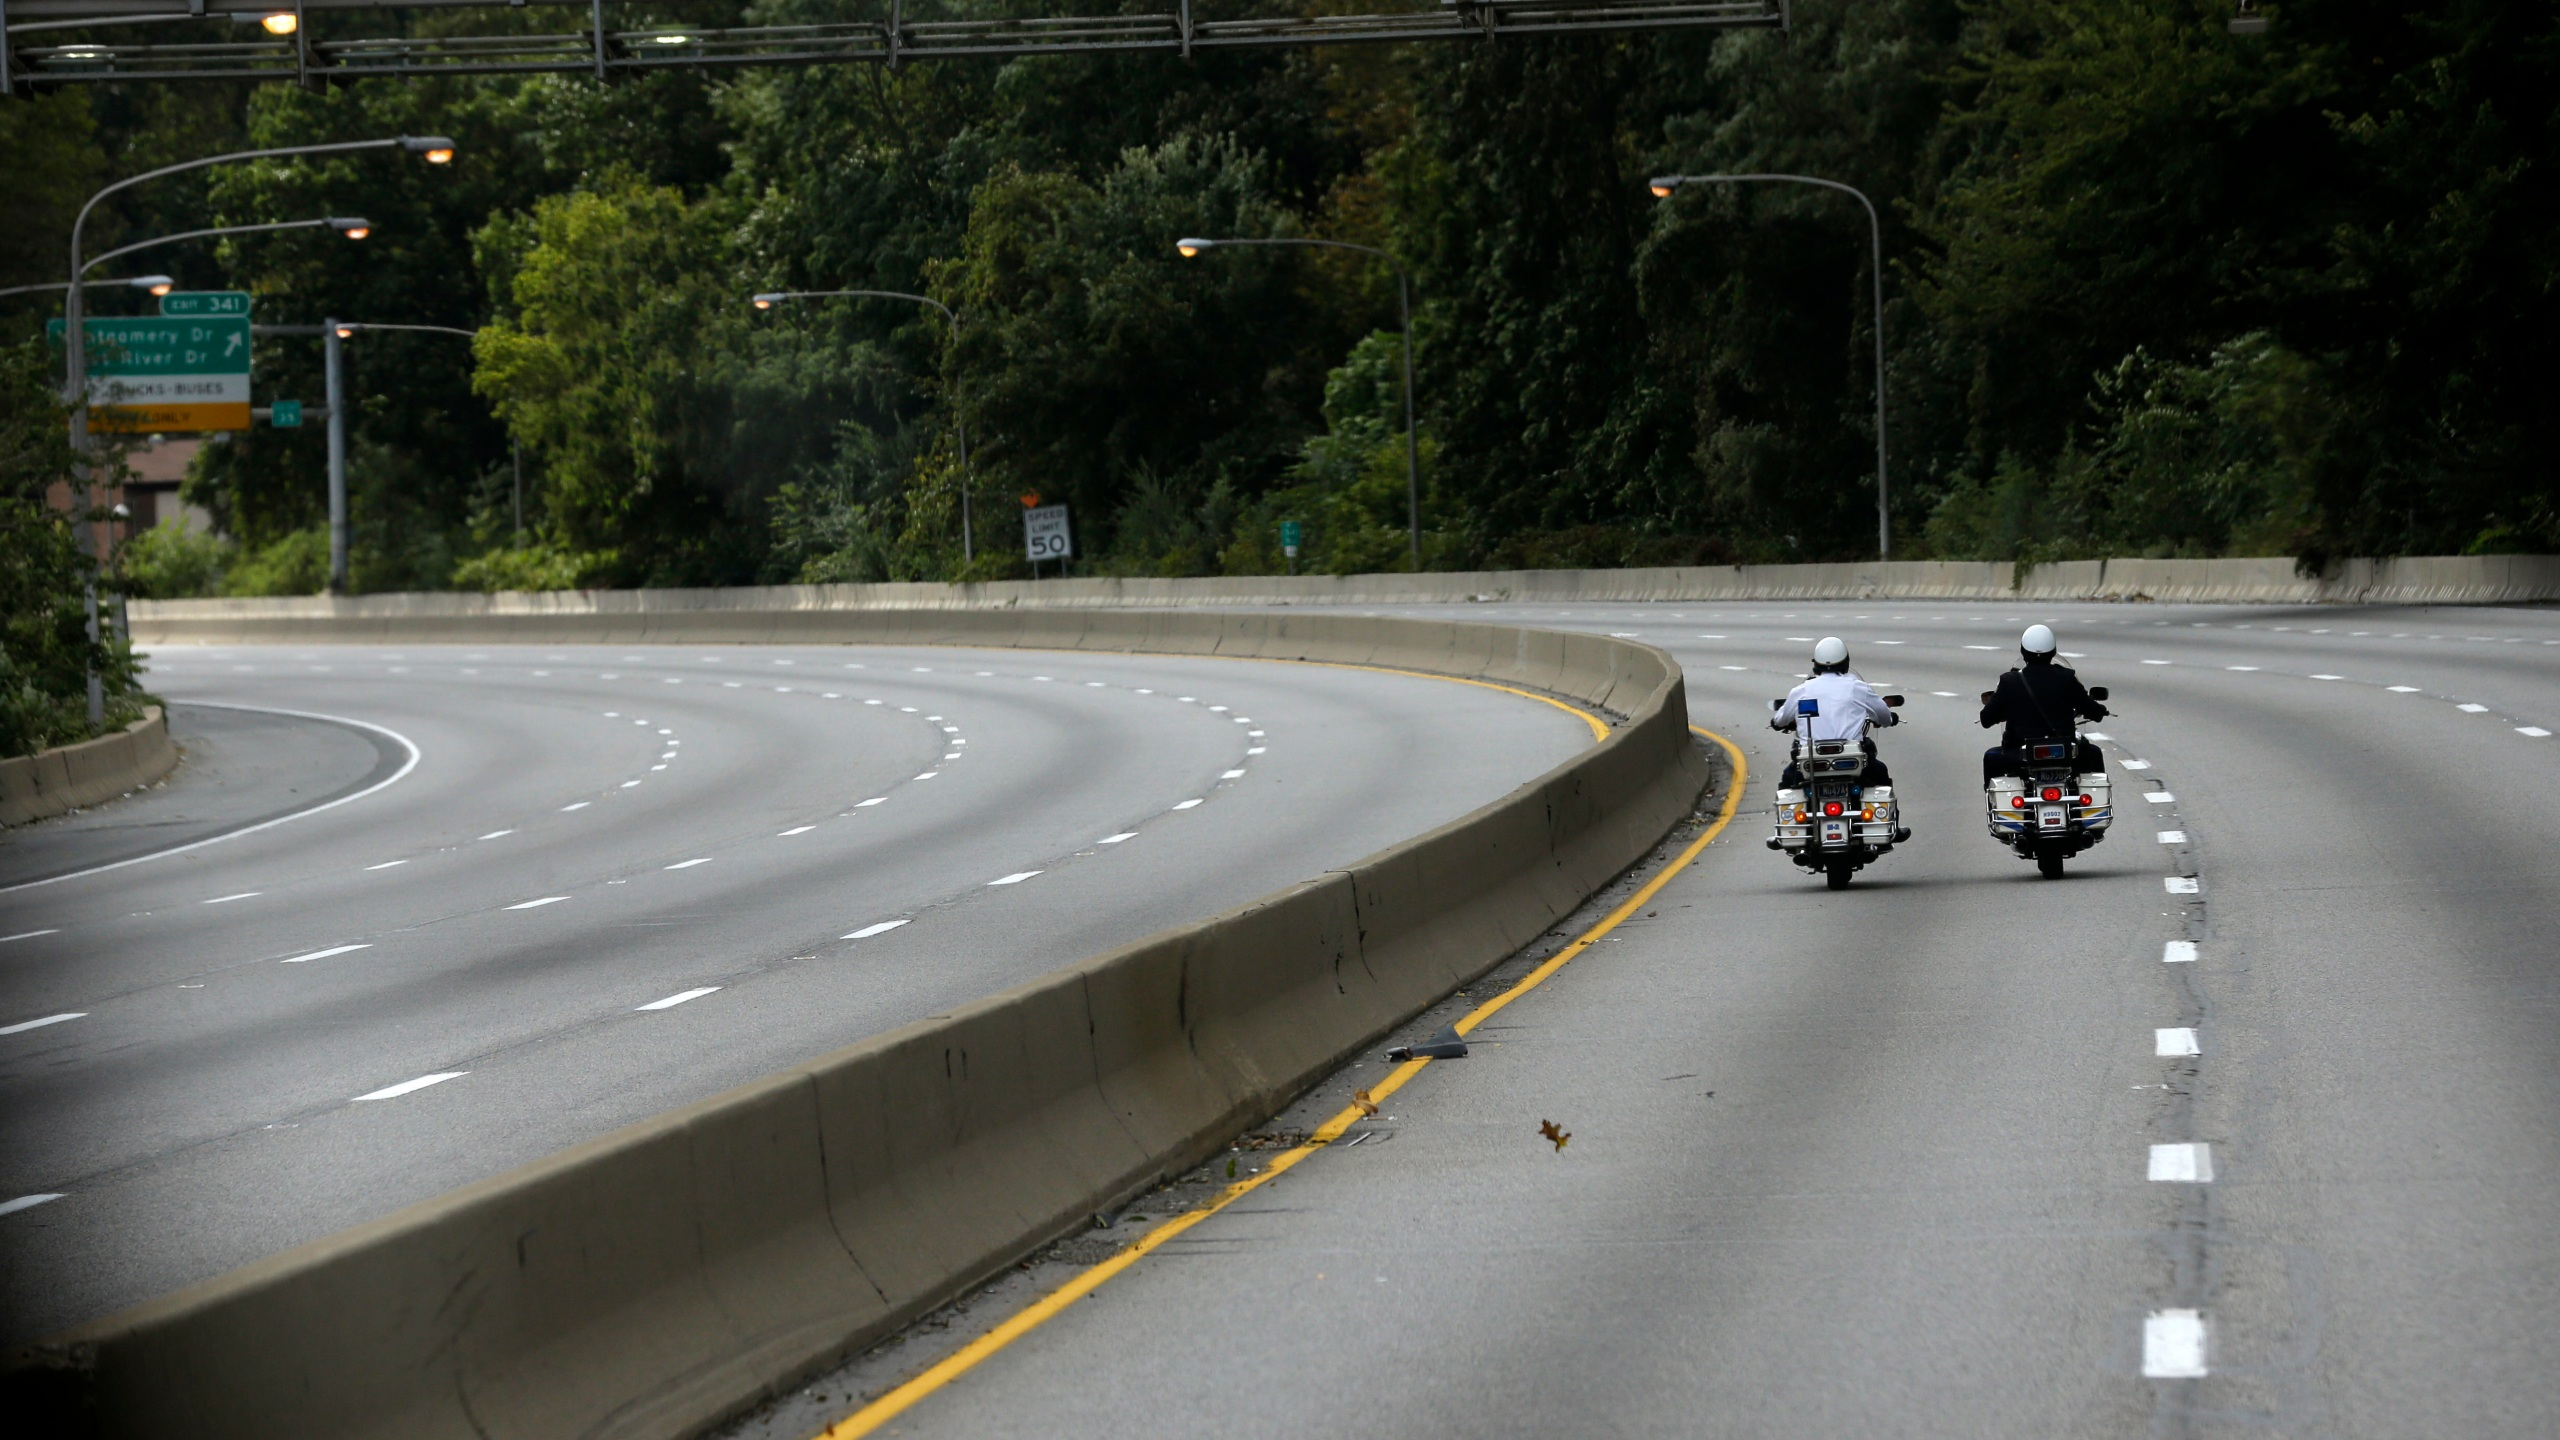 Motorcycle_Safety_63323-159532.jpg05528970